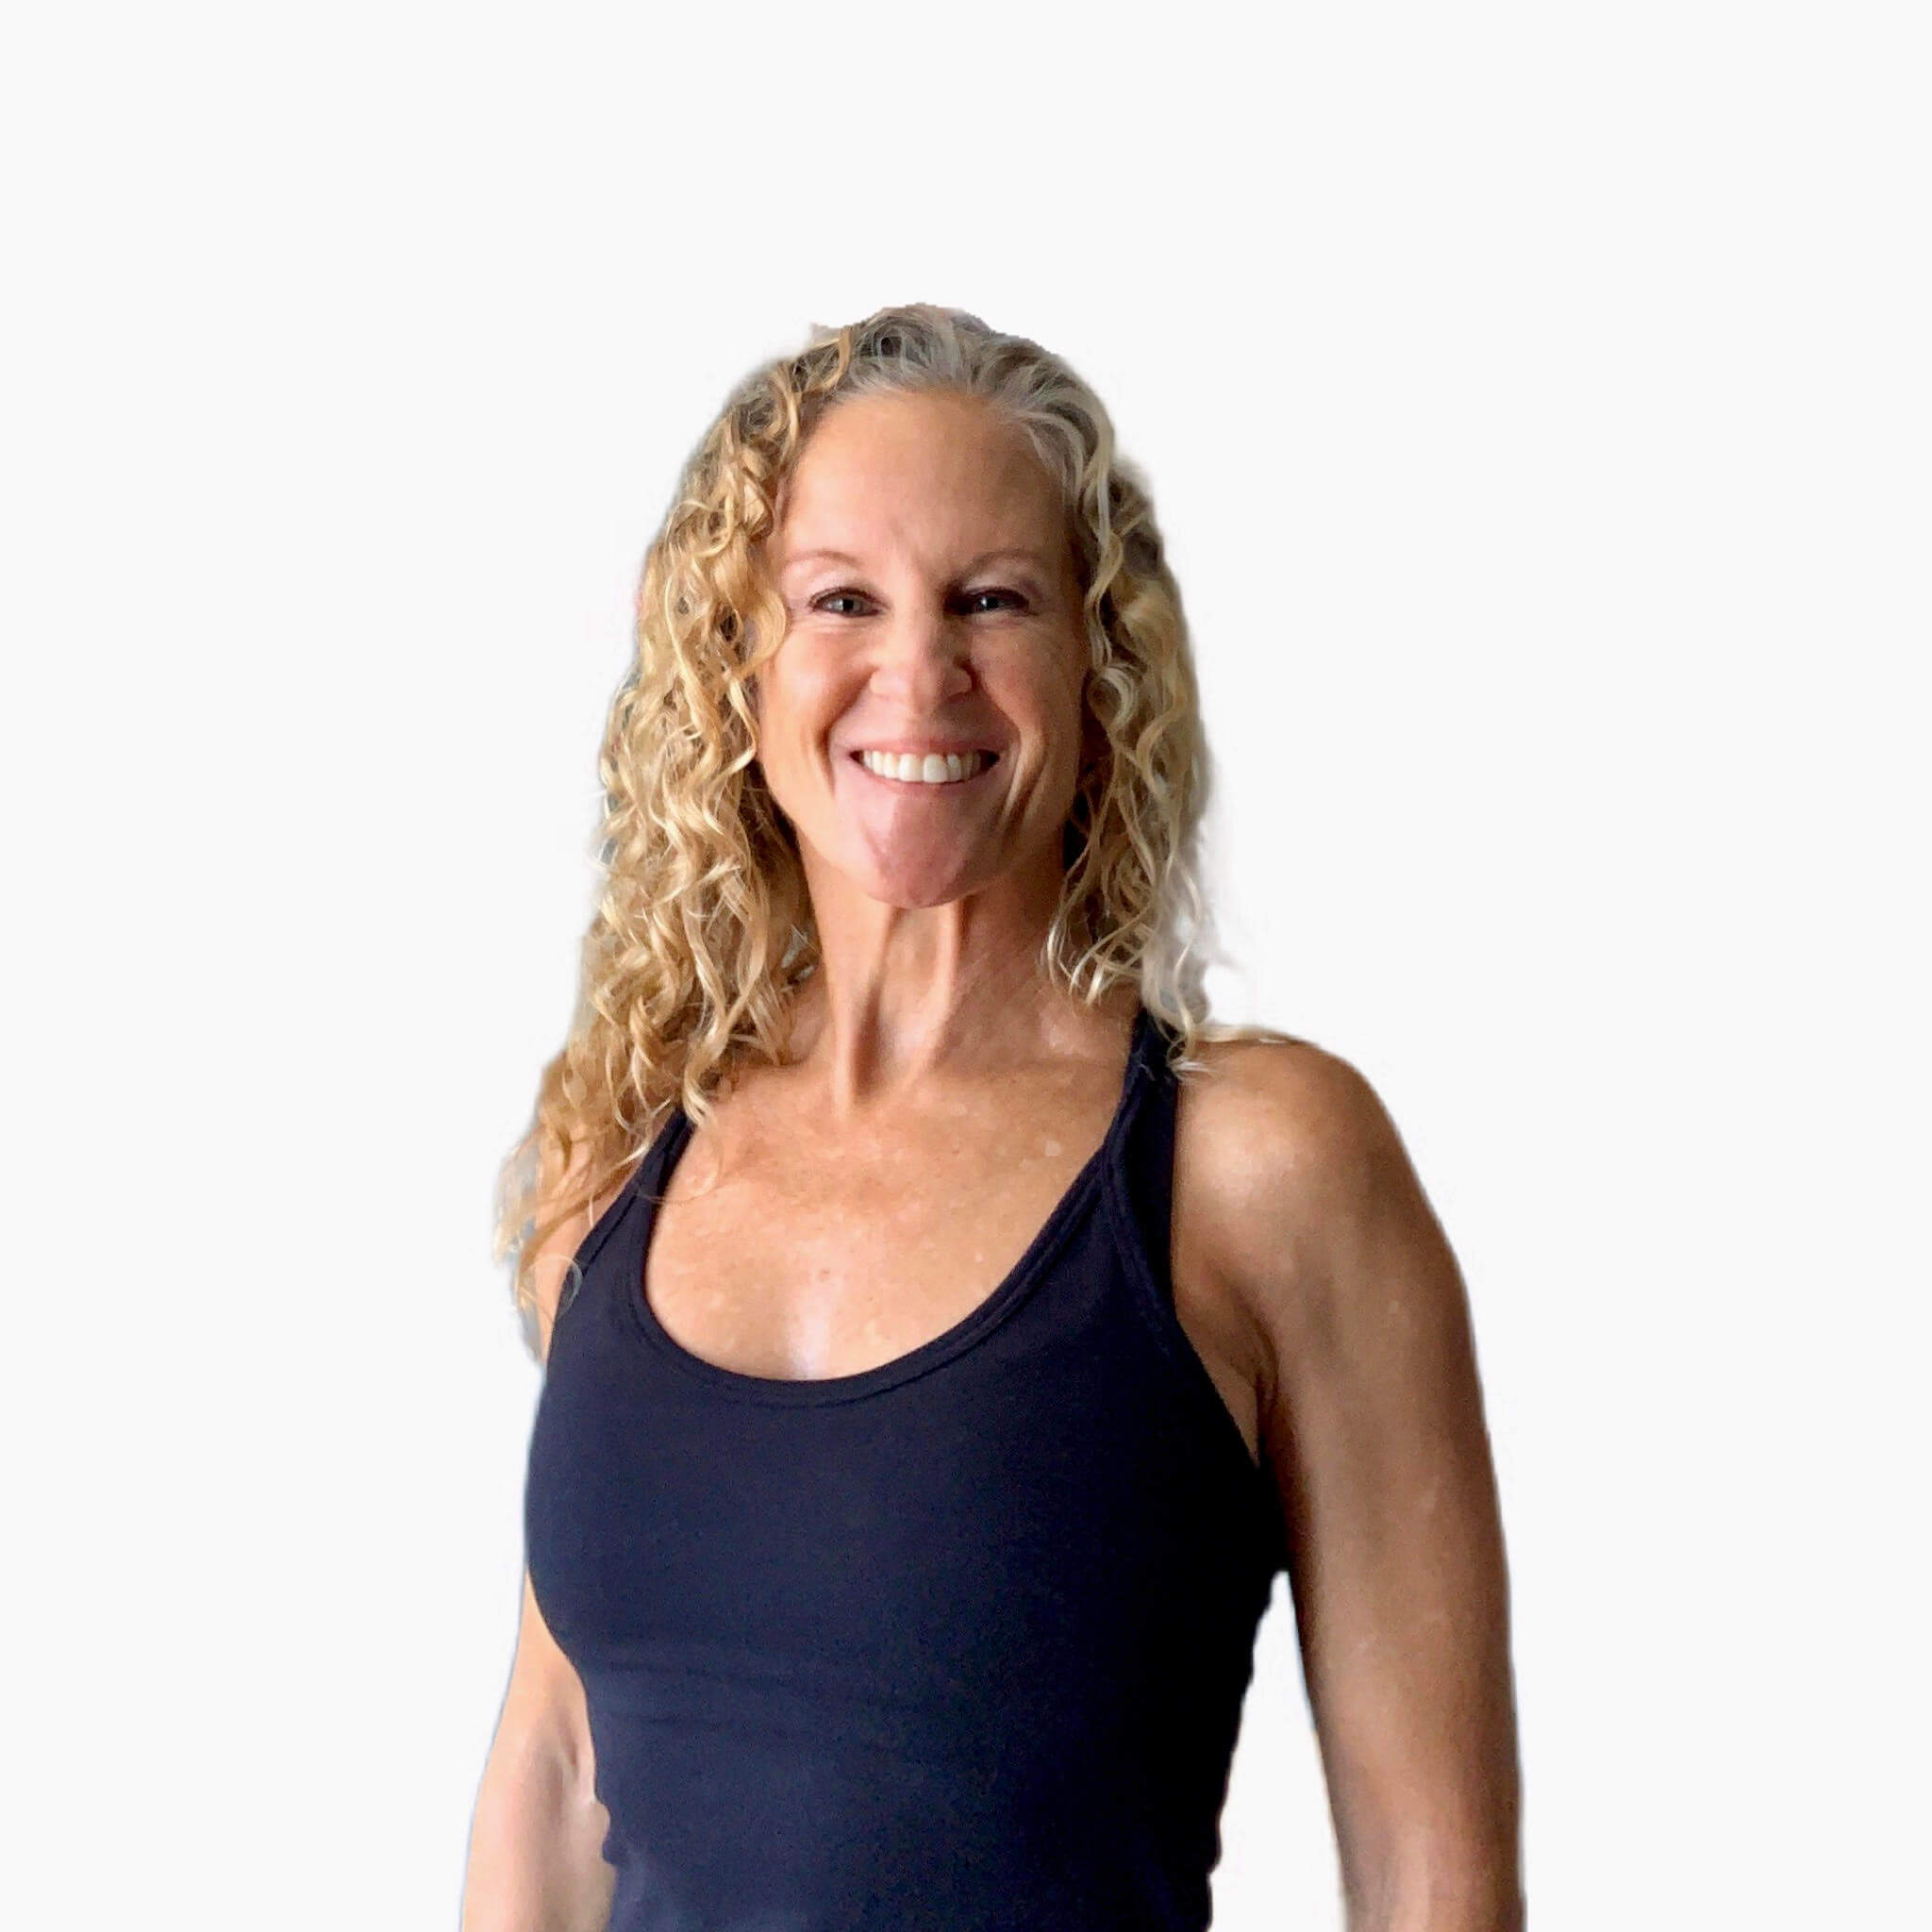 Wendy Sallin: Client Experience Coordinator & Certified Personal Trainer